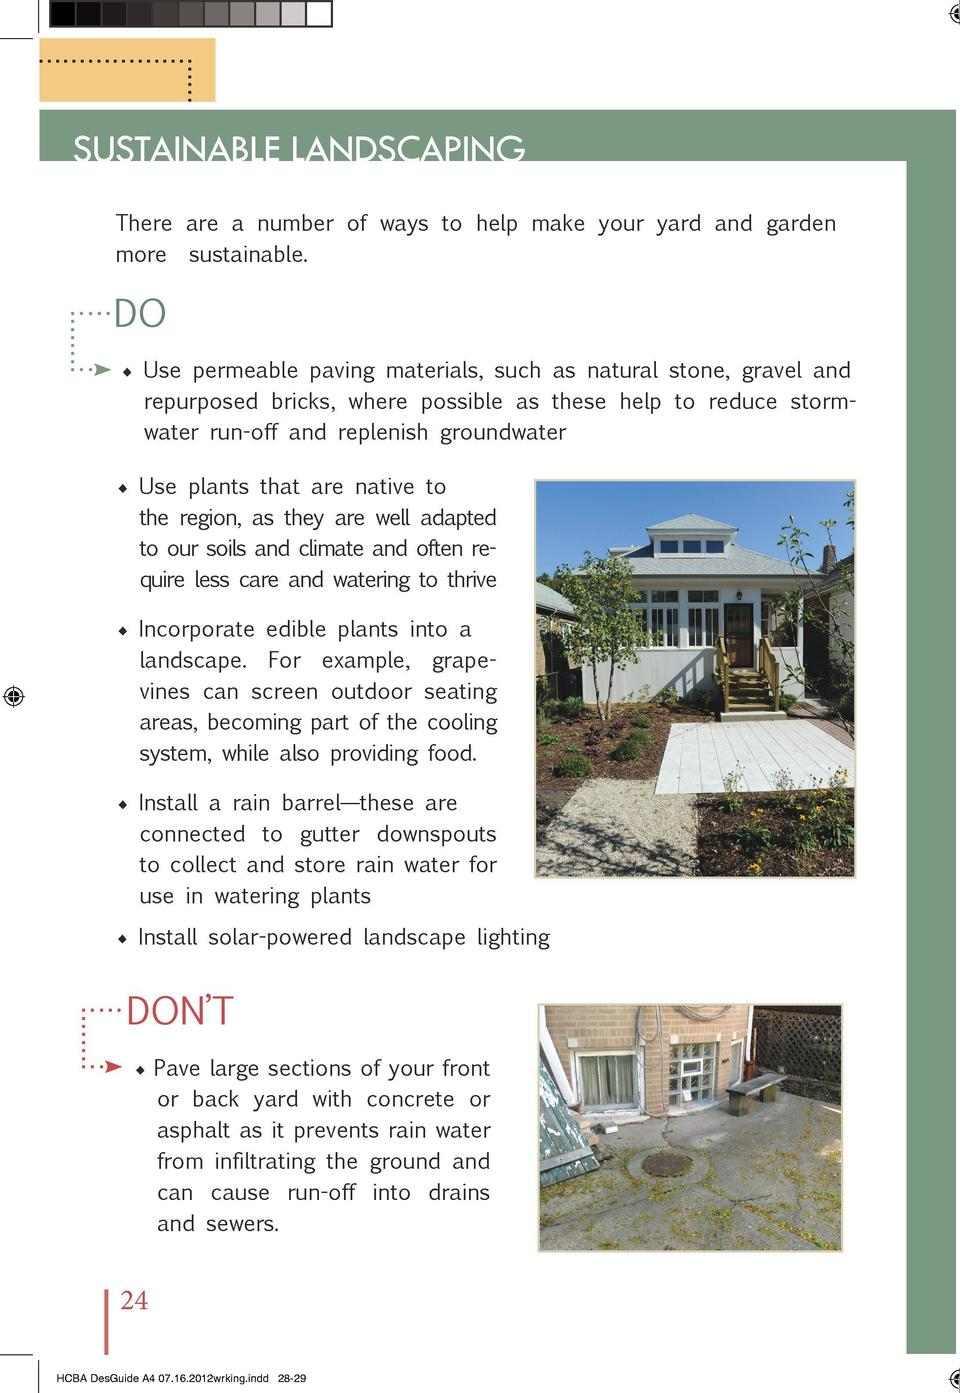 SUSTAINABLE LANDSCAPING  THE CHICAGO BUNGALOW ASSOCIATION  There are a number of ways to help make your yard and garden mo...